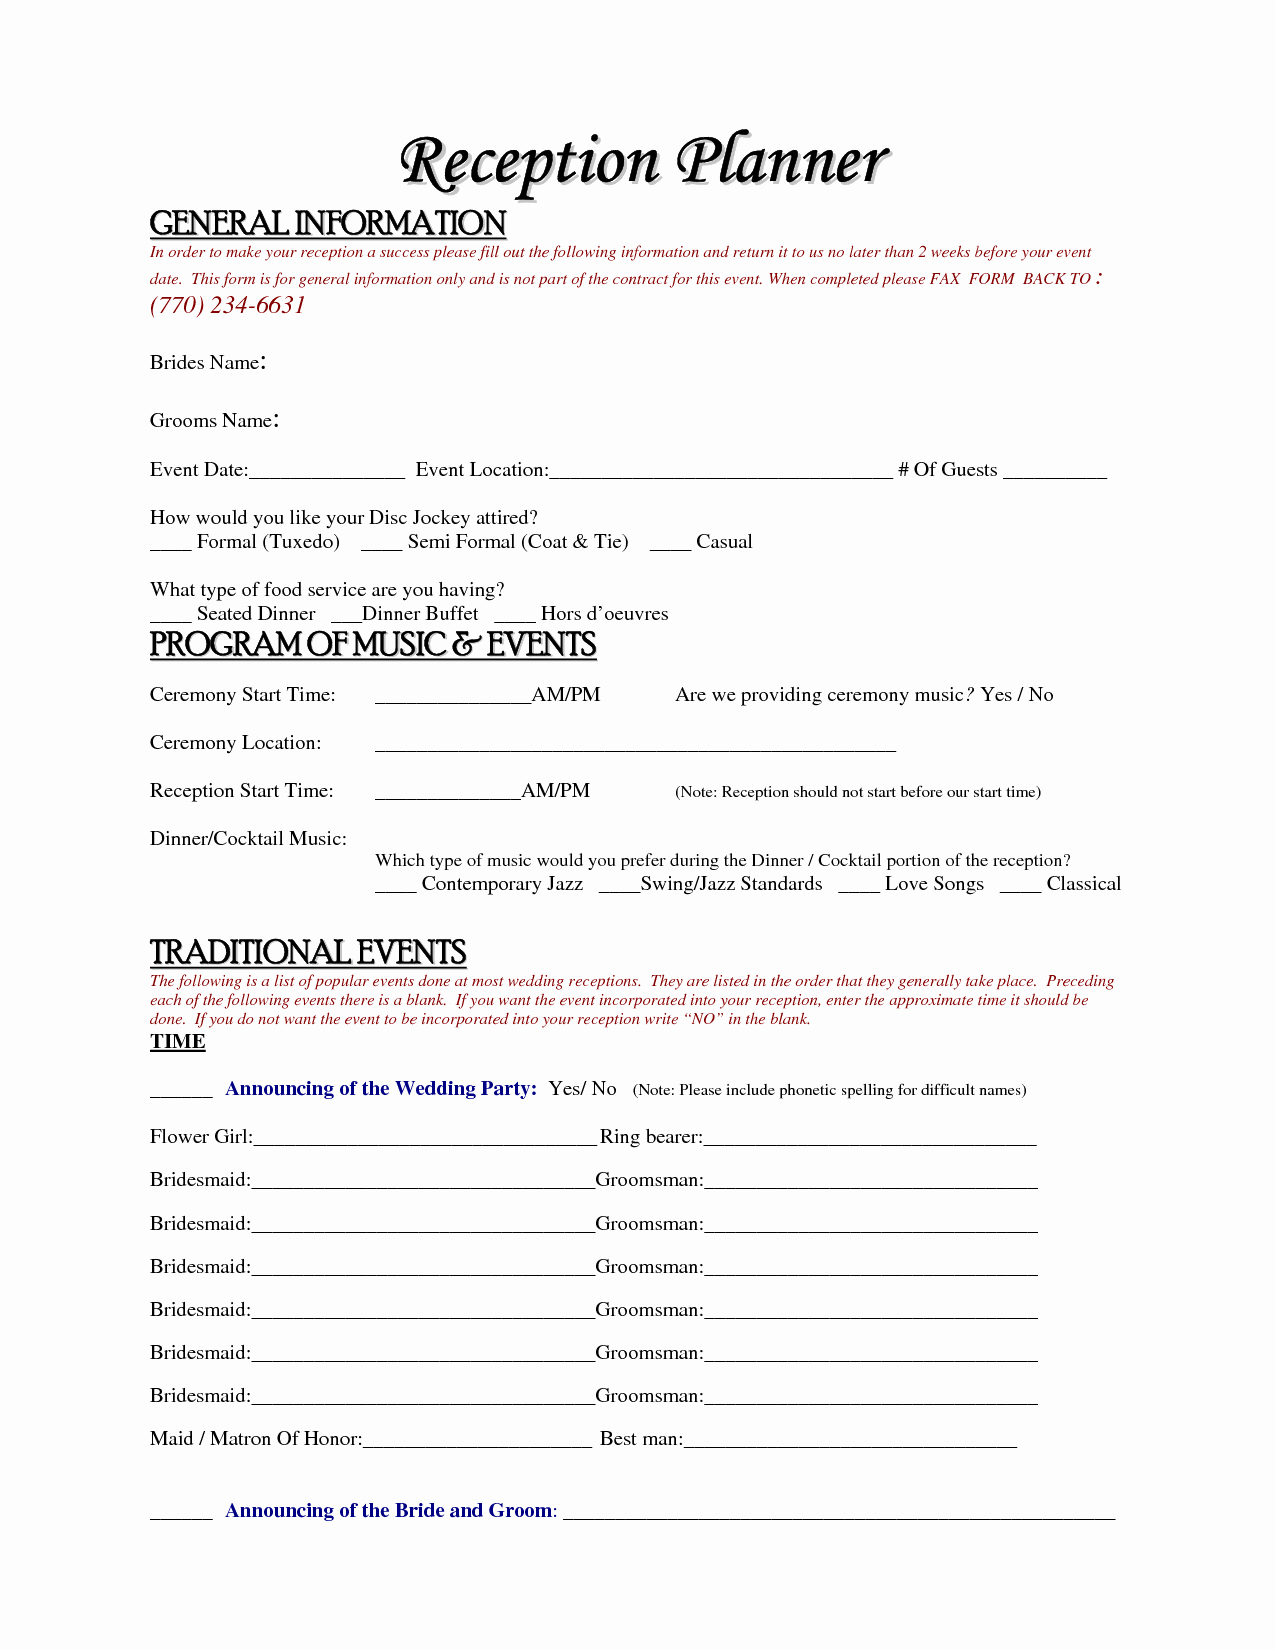 Wedding Flowers order form Template Best Of Pin by Yesidomariage On La Voiture Des Mariés In 2019